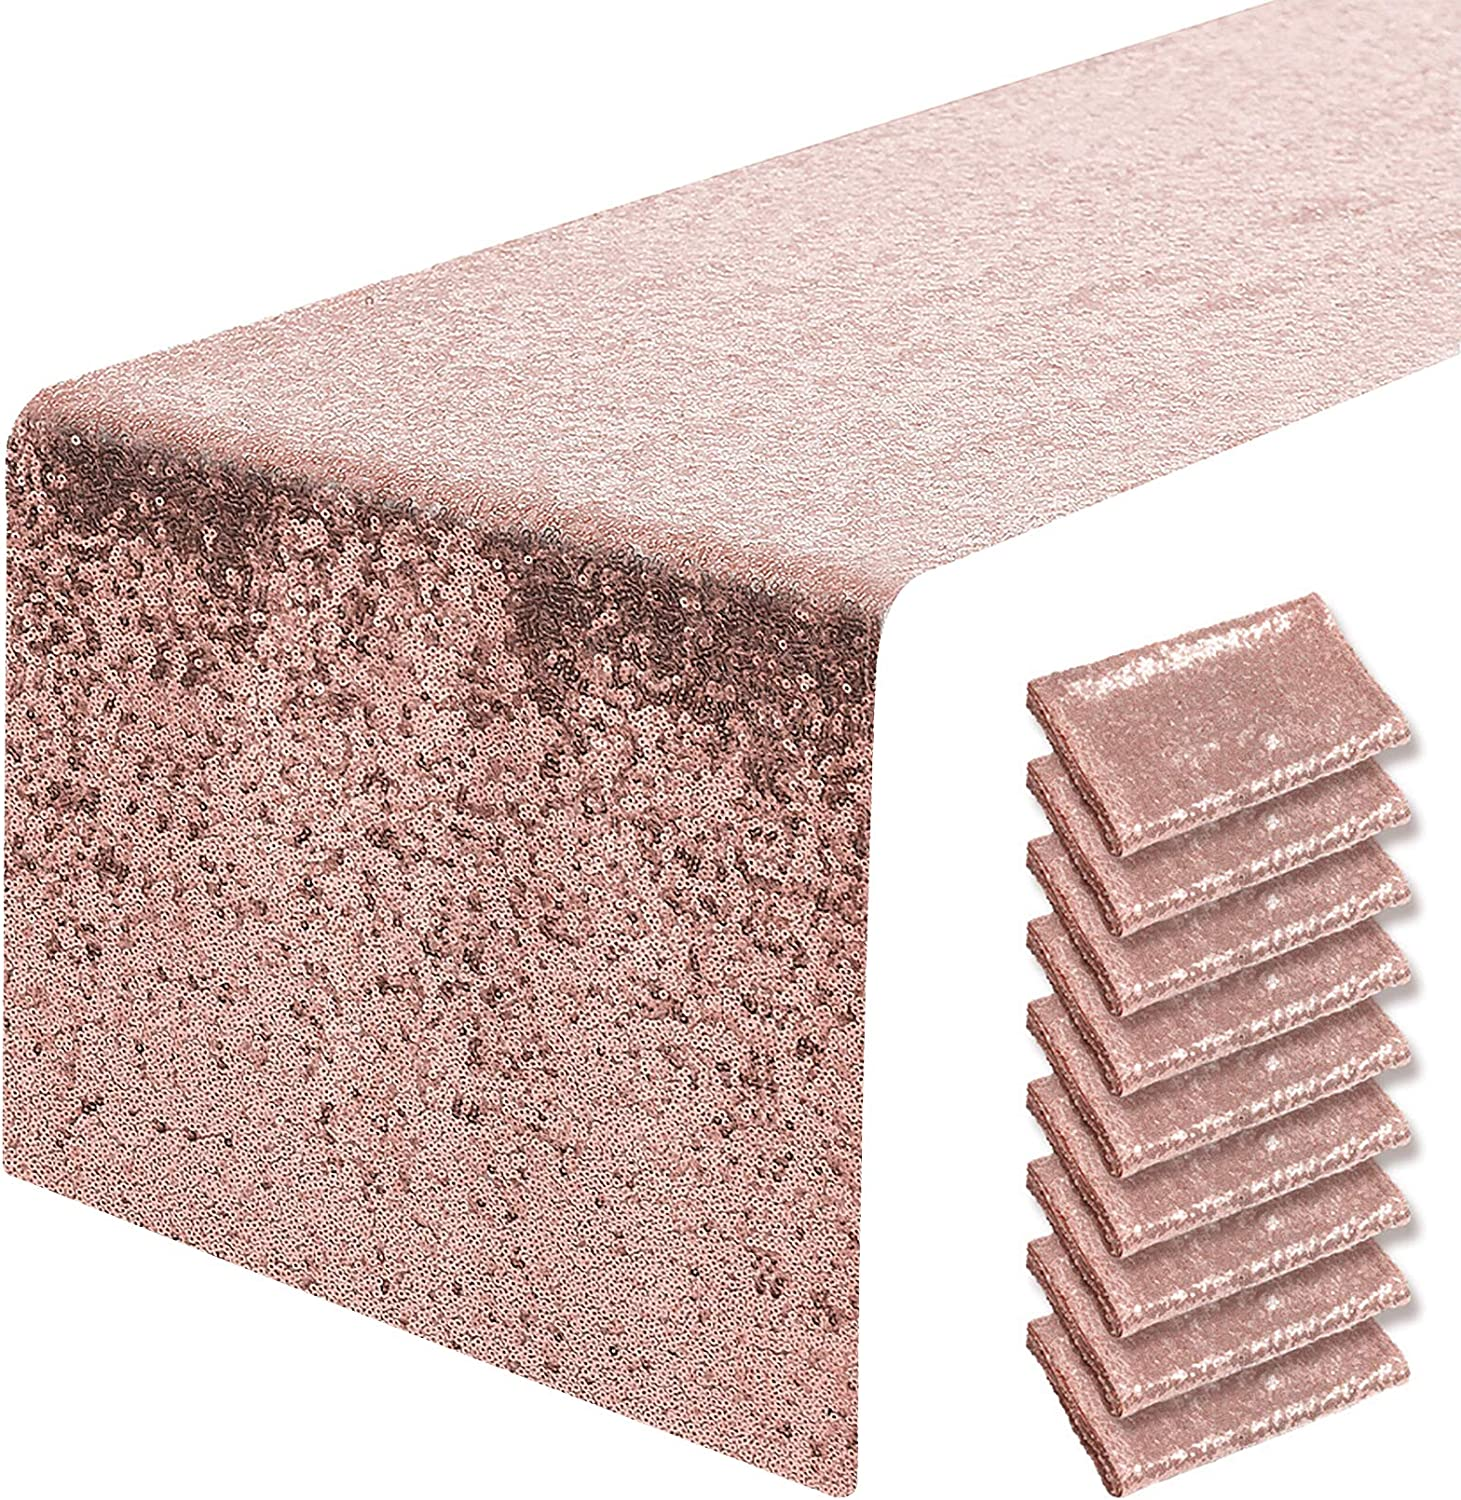 Pufogu 10 Packs Max 81% OFF 12 x 72 inches Table Sequin Gold Runner Rose Popular standard Gl